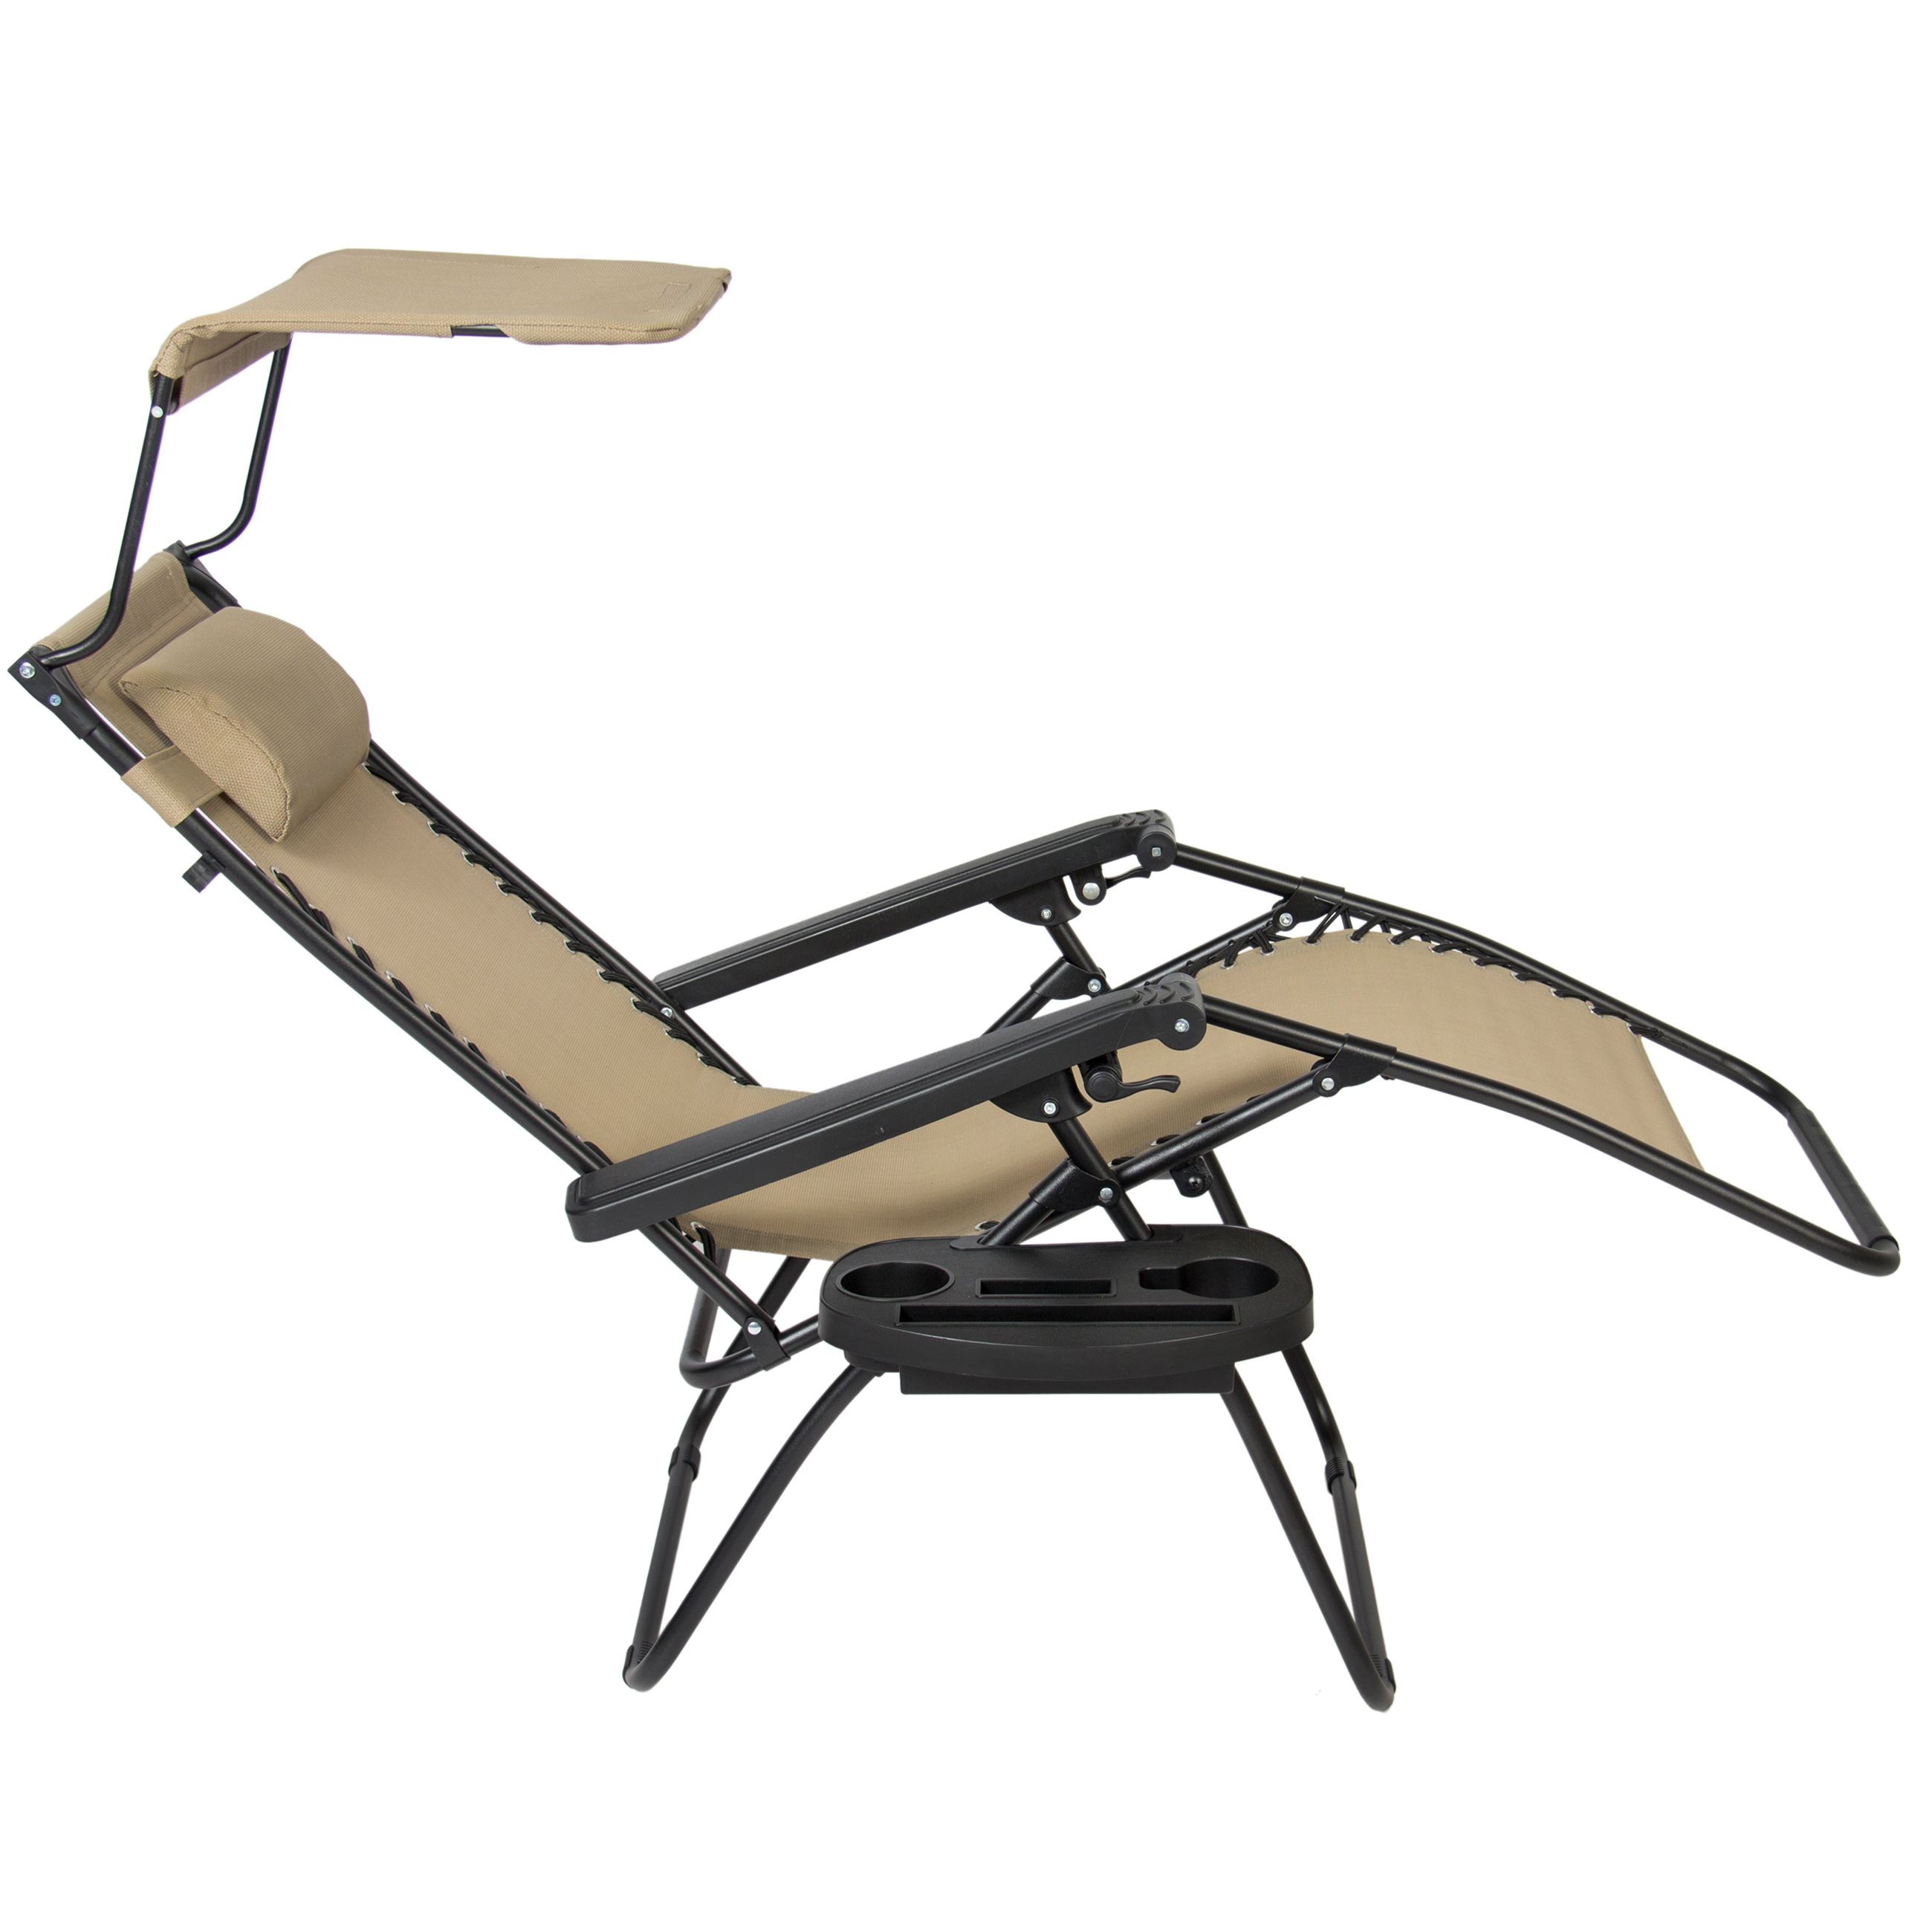 Folding Lawn Chairs With Canopy